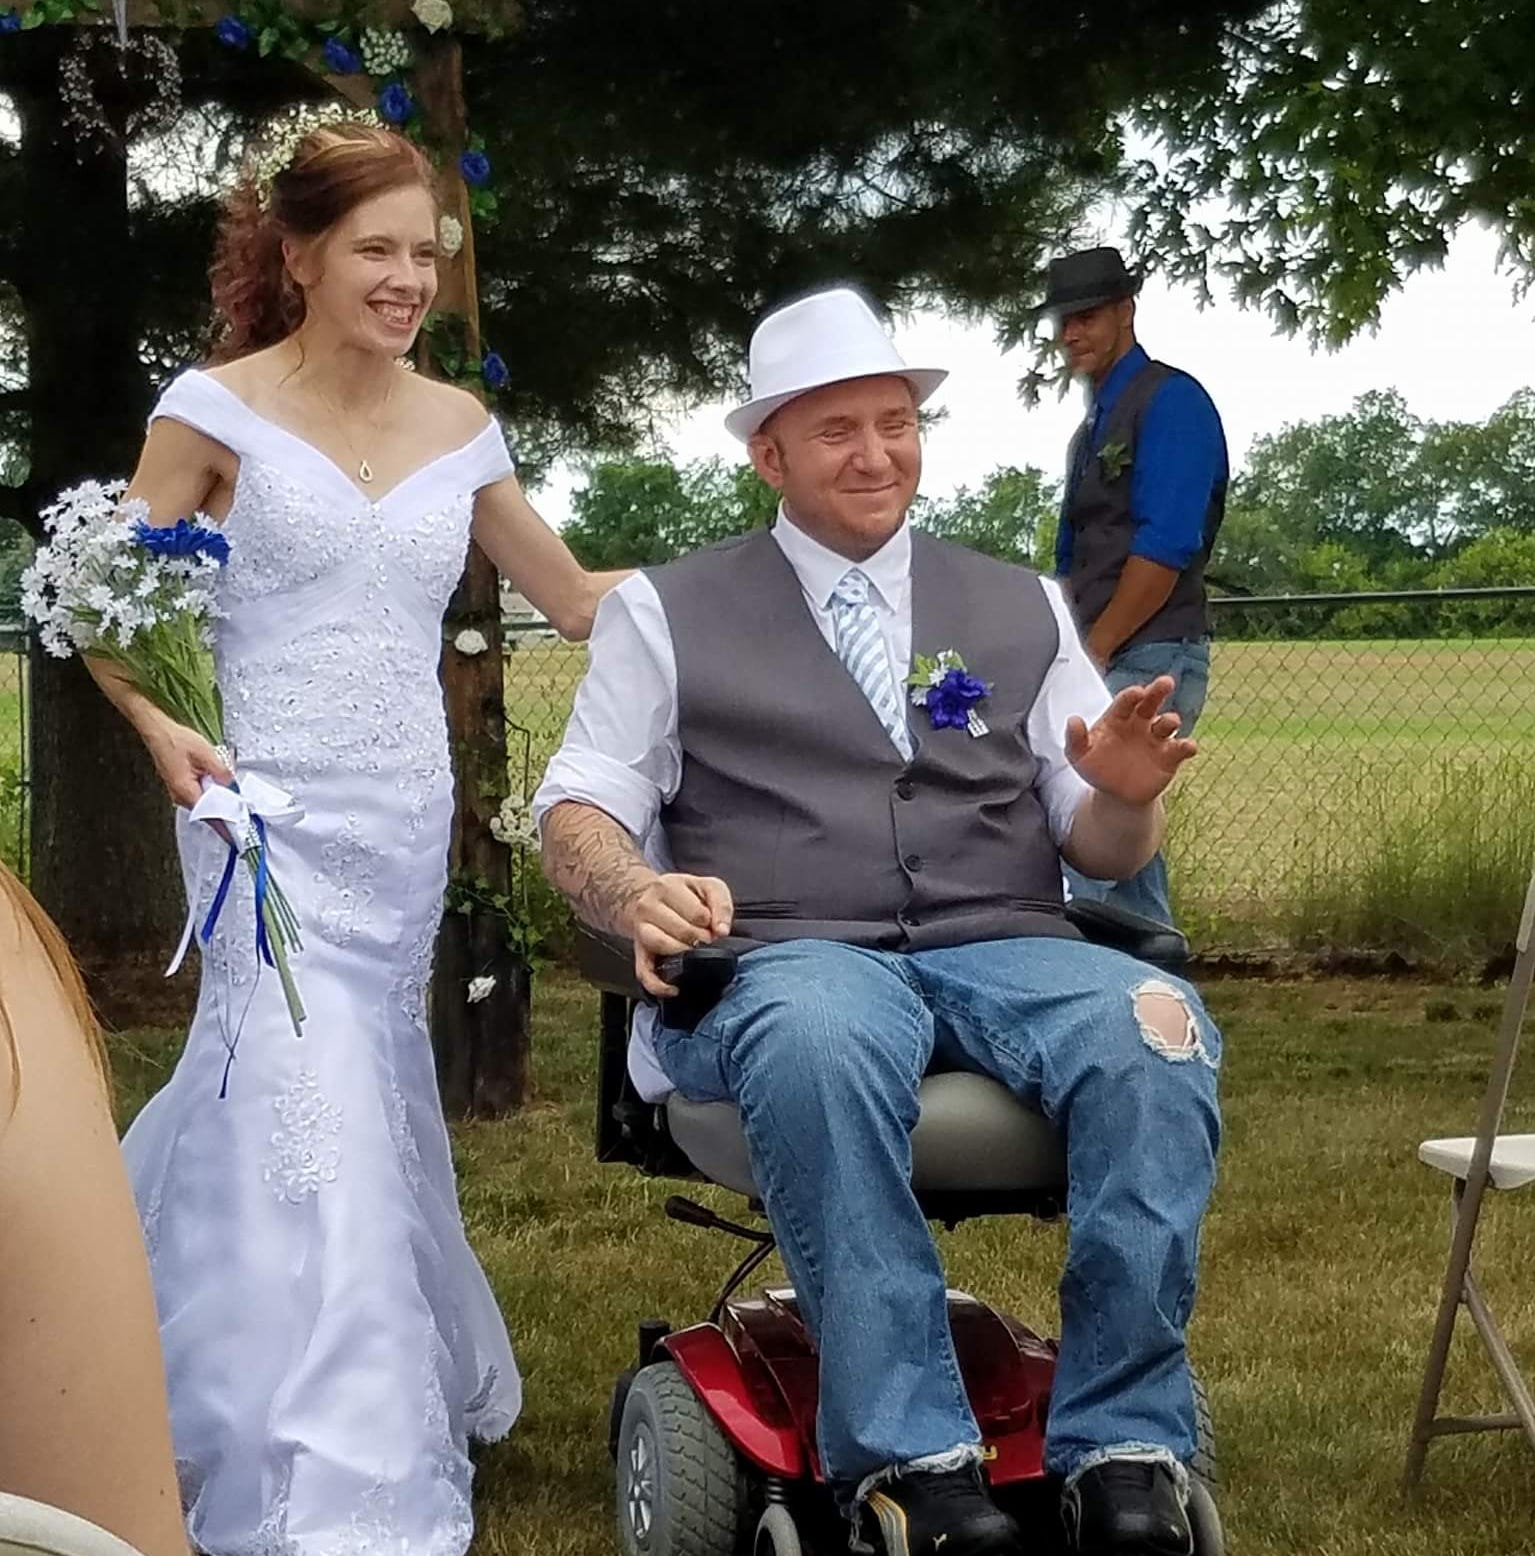 Putnam: He was paralyzed, but 'never lost his sense of humor' his wife recalls